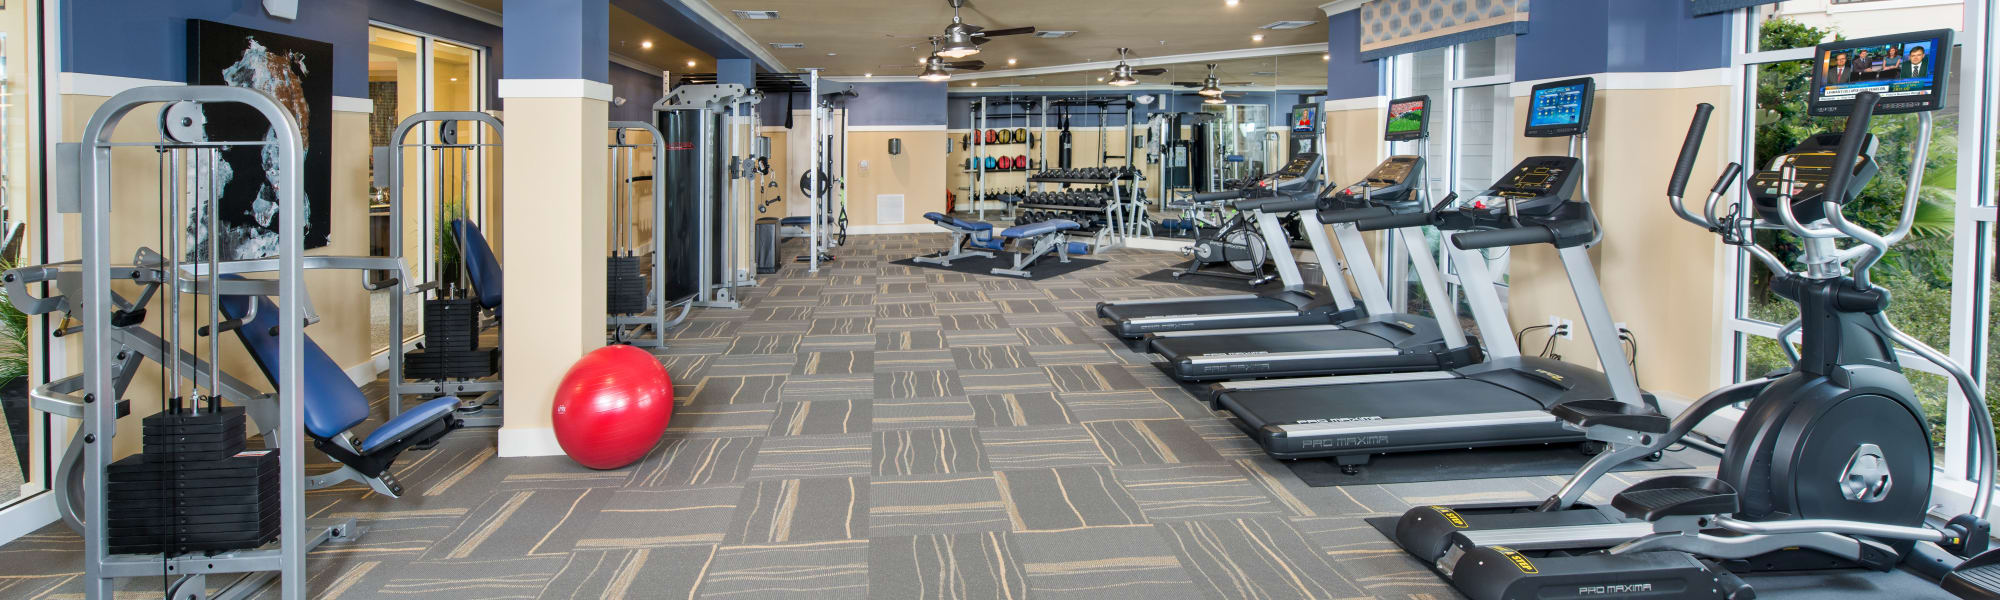 Amenities at Integra Lakes in Casselberry, Florida